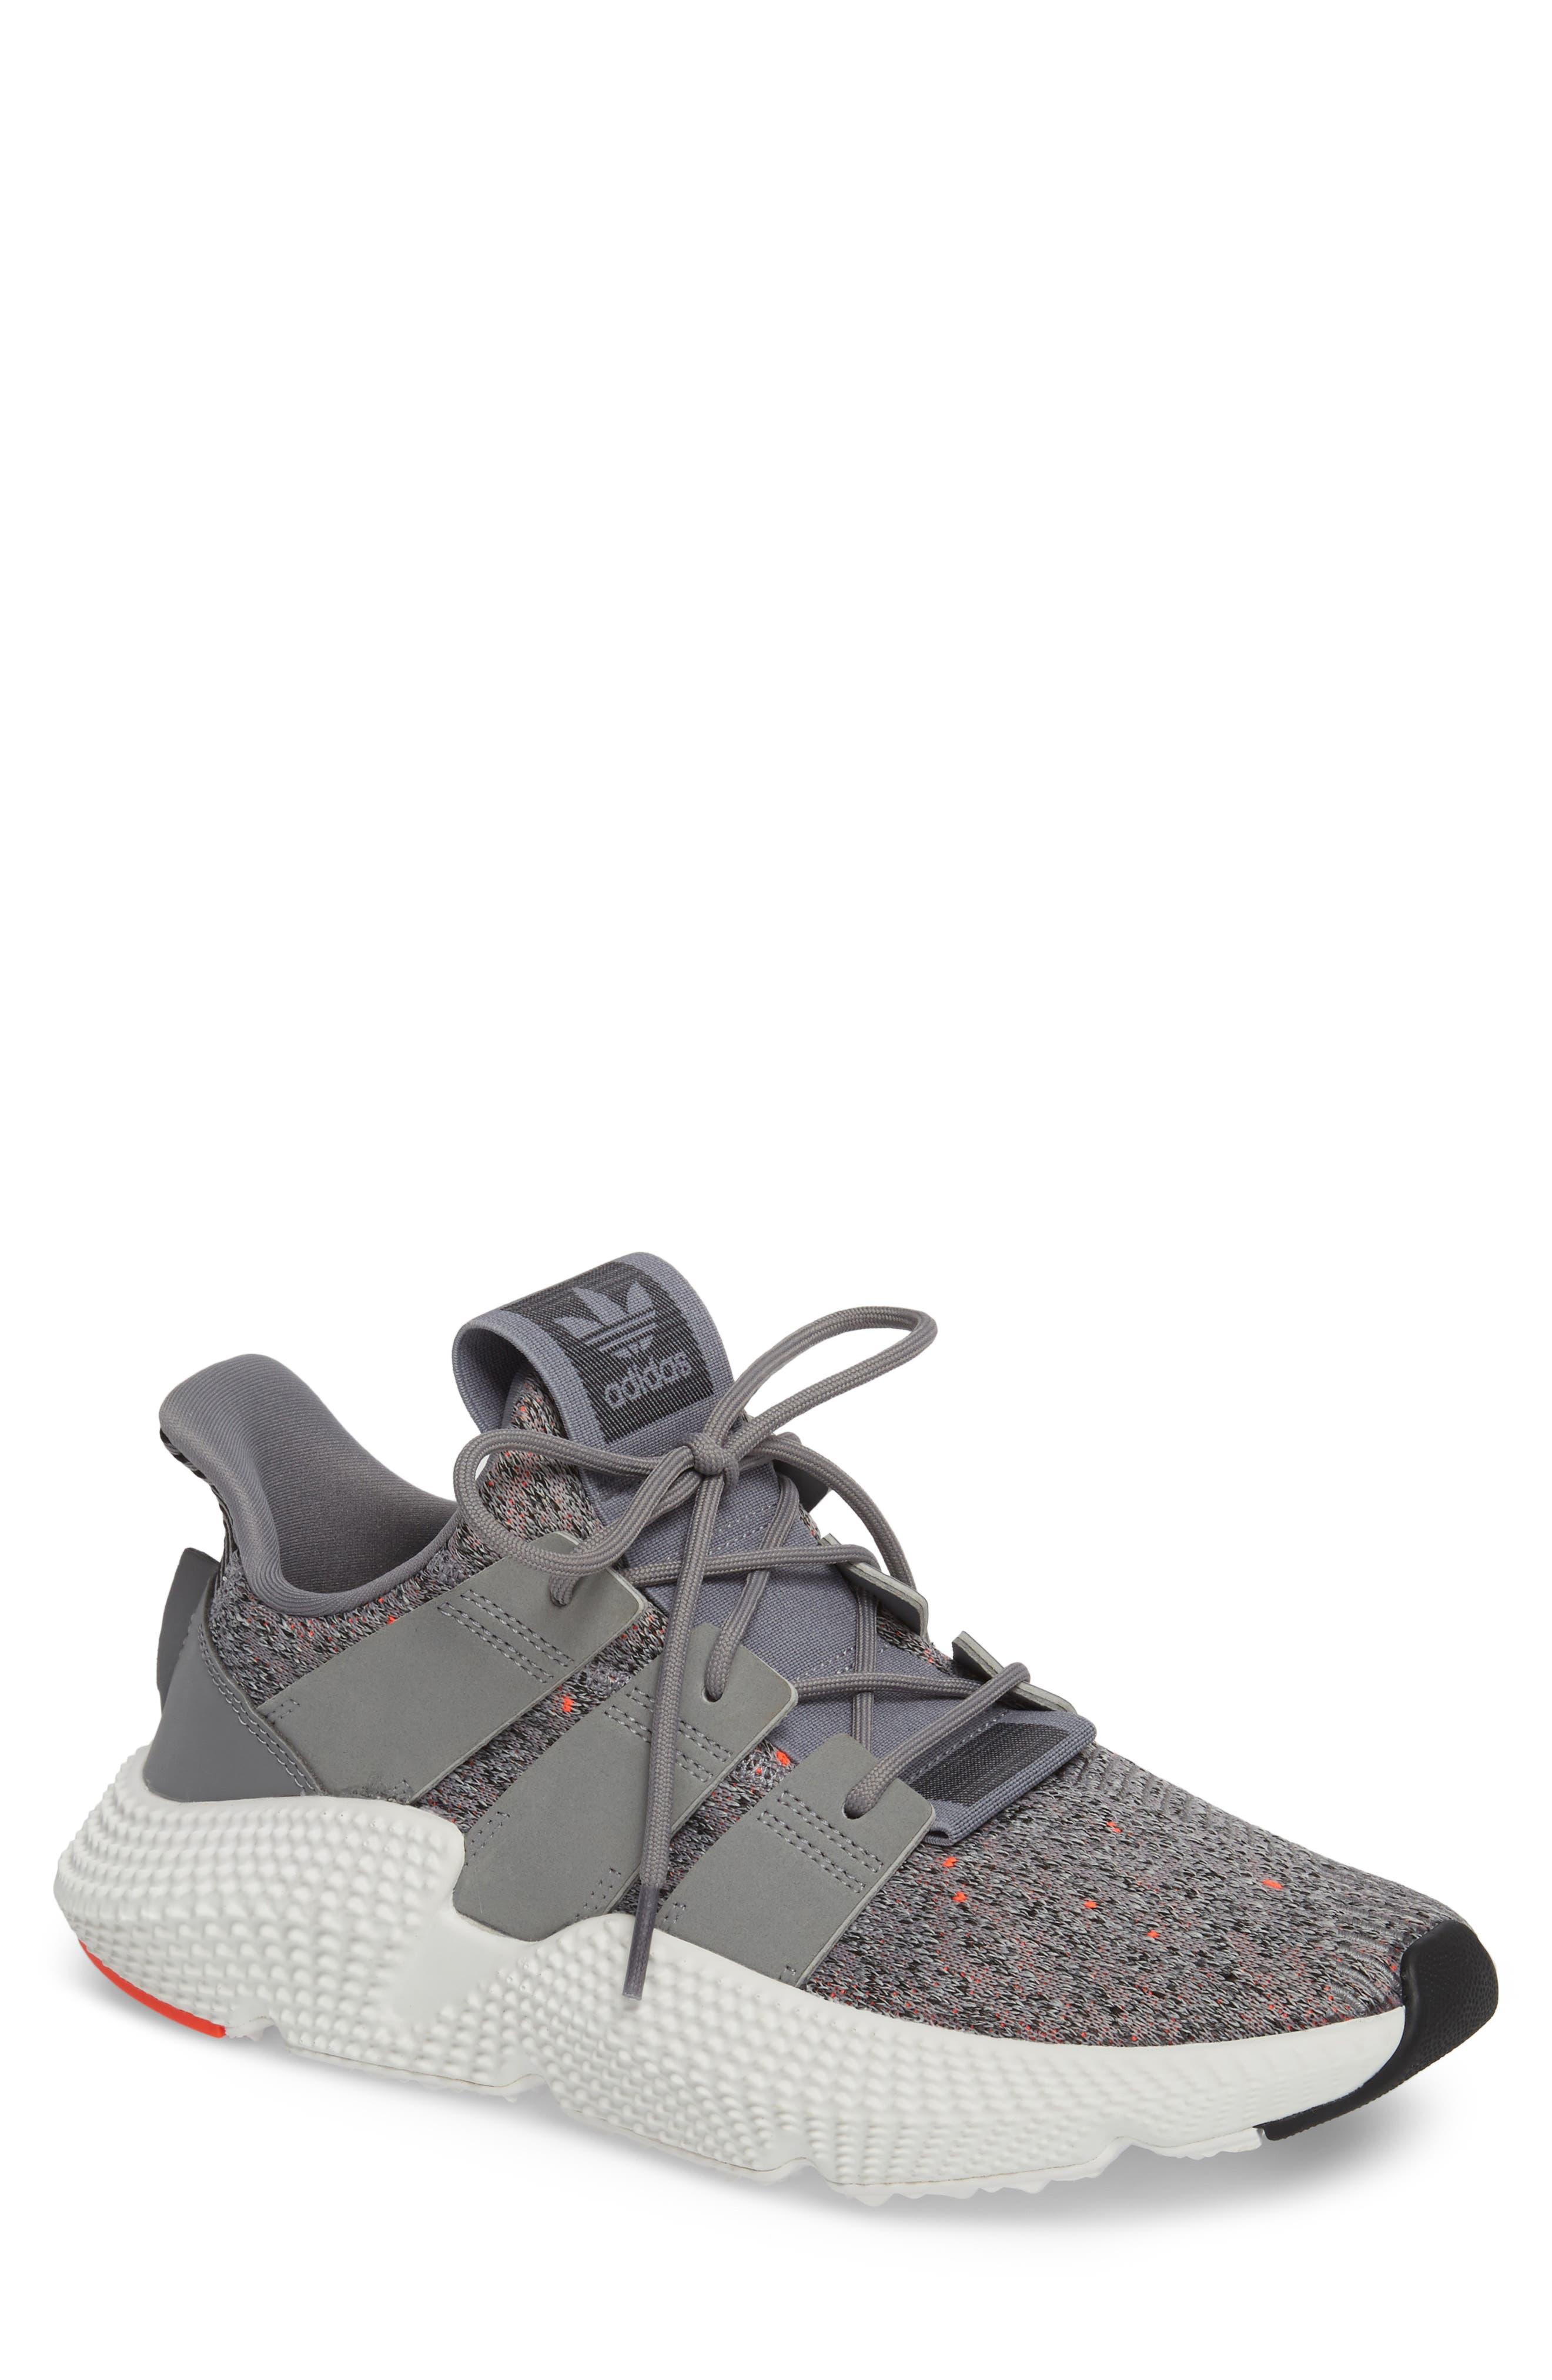 Prophere Sneaker,                             Main thumbnail 1, color,                             Grey/ White/ Solar Red